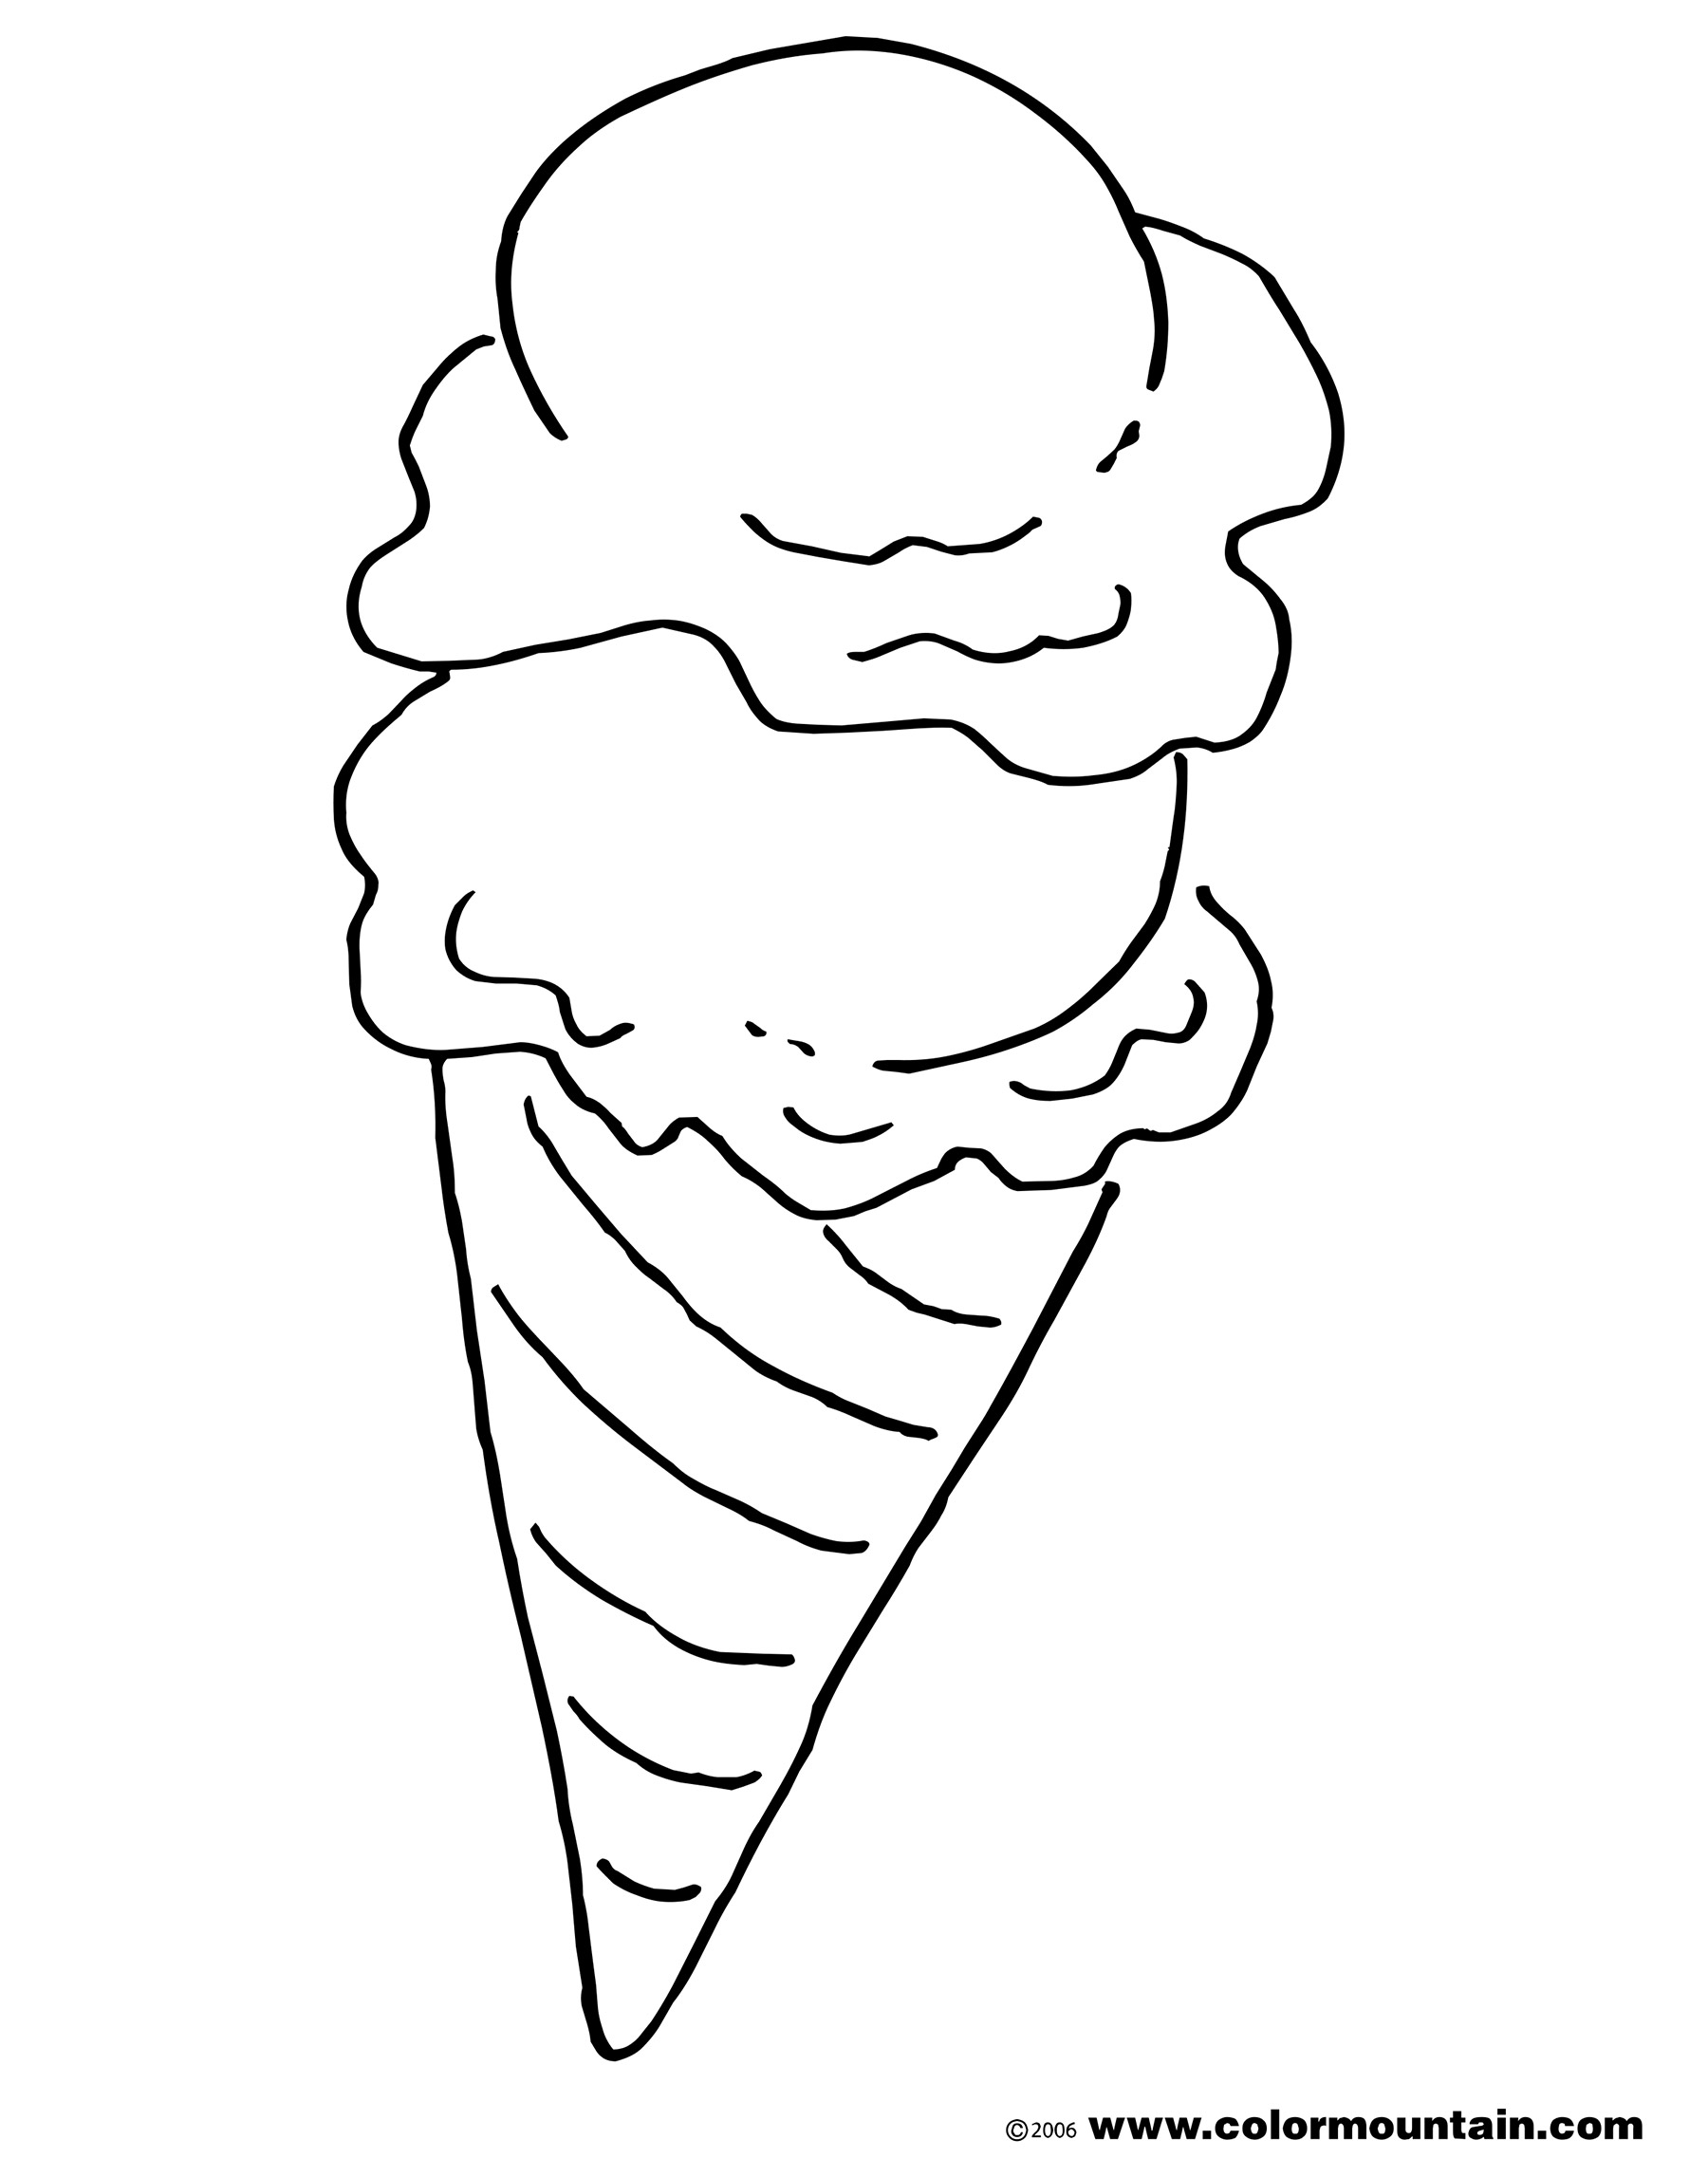 ice cream coloring book free printable ice cream coloring pages for kids ice coloring cream book